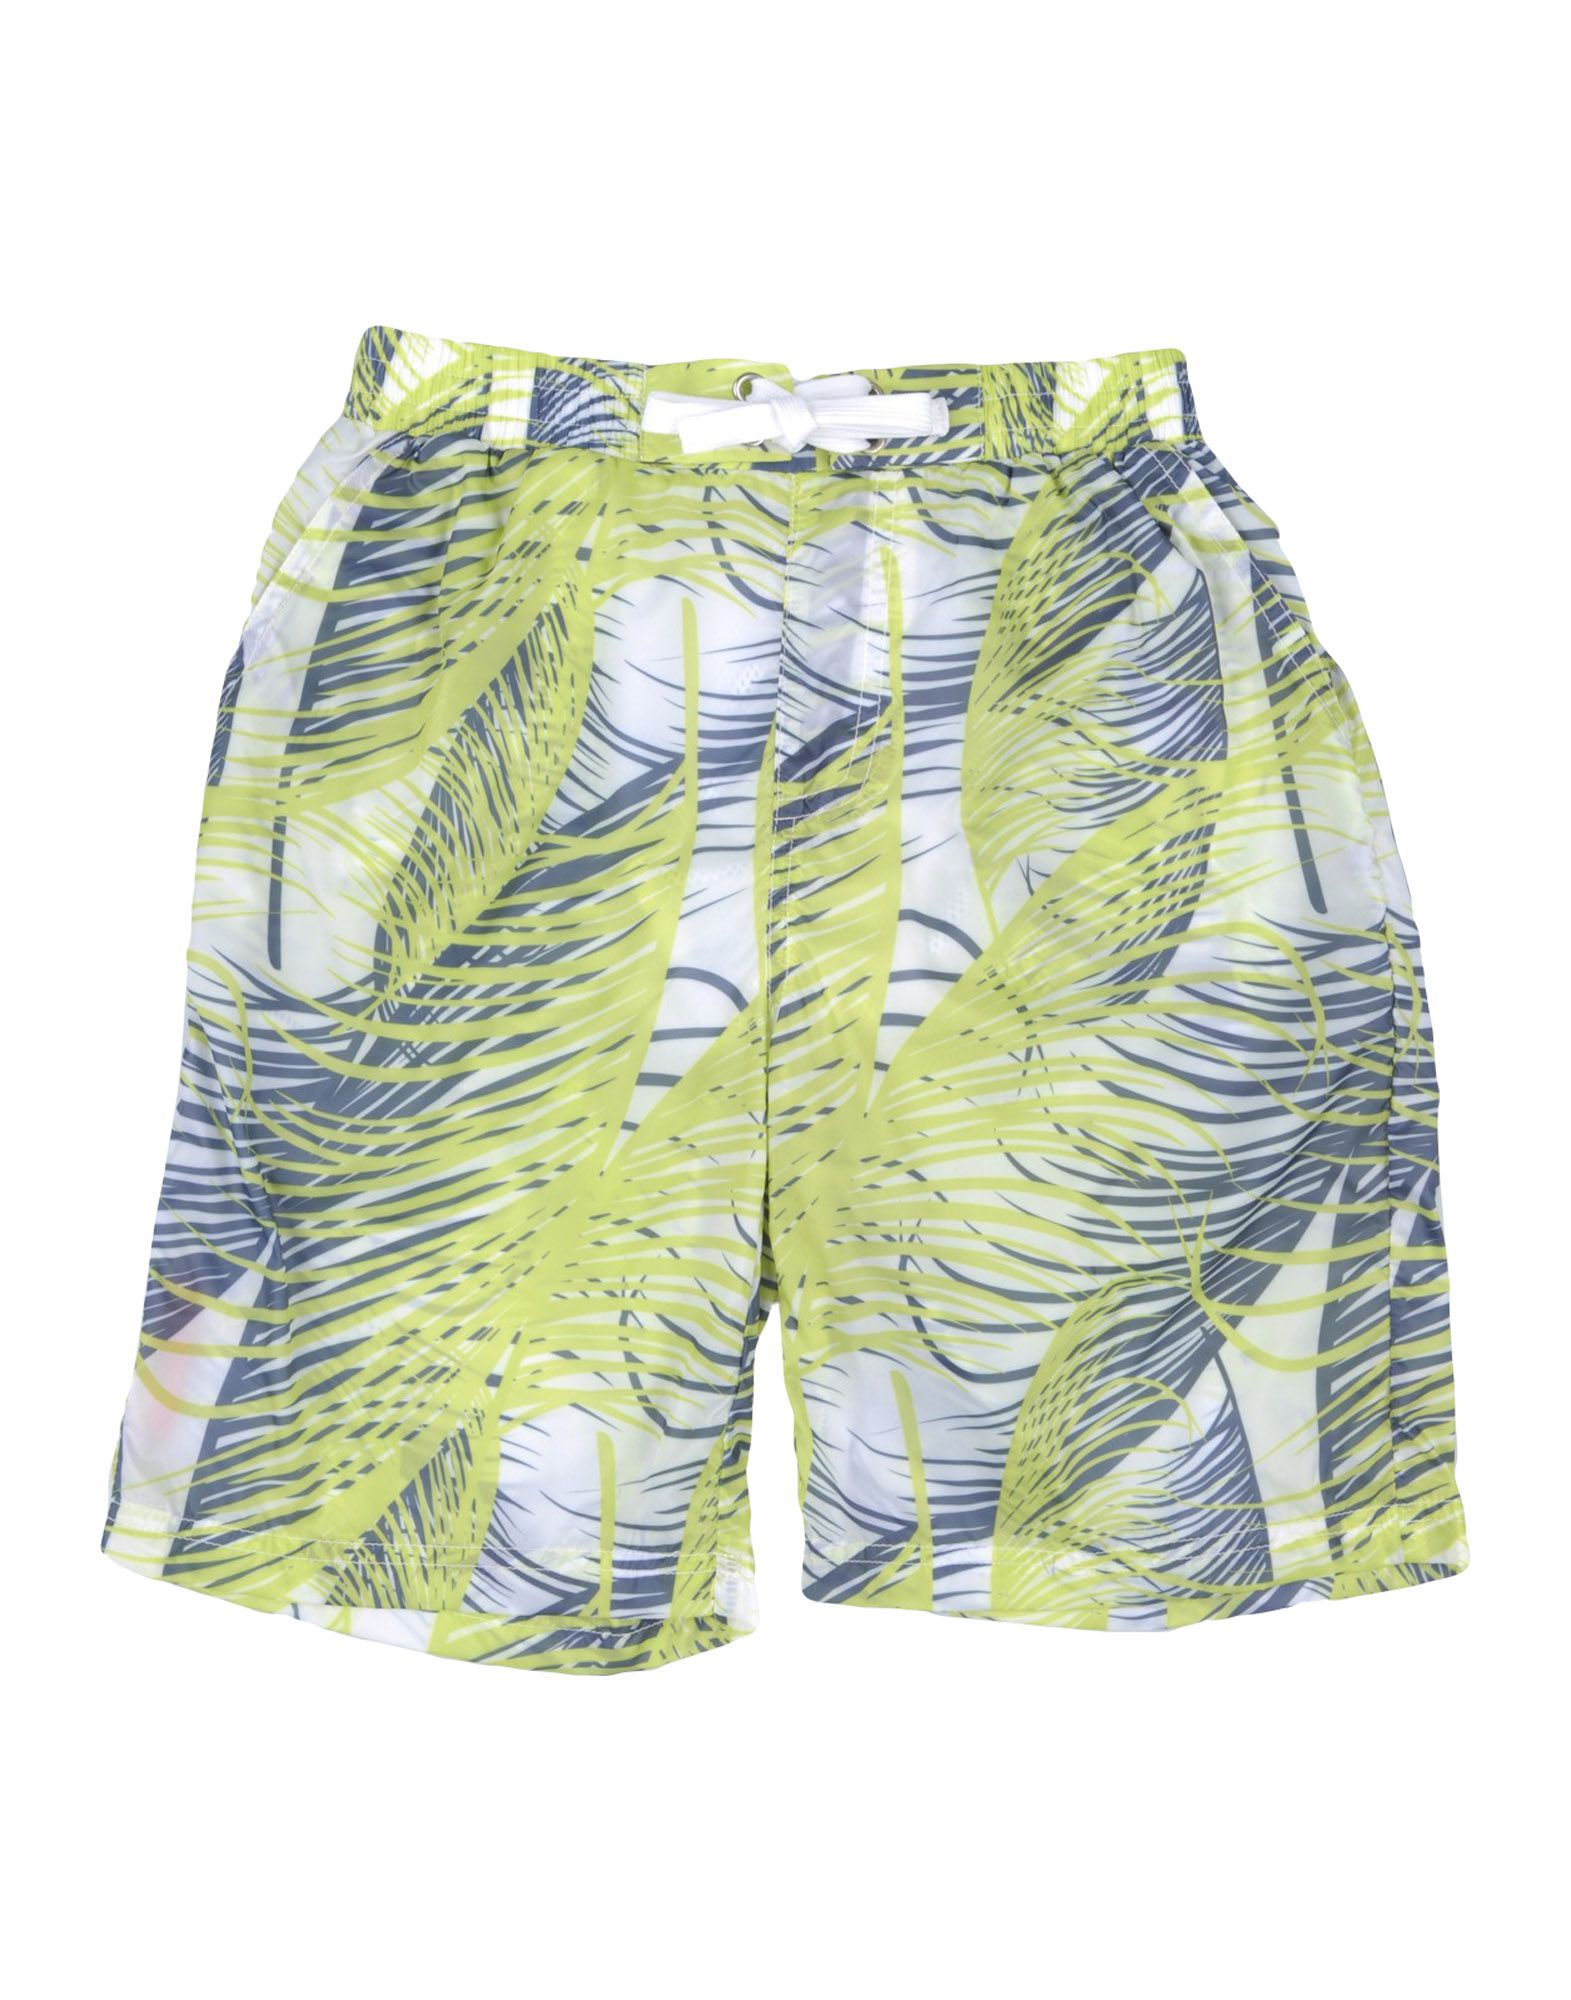 BIKKEMBERGS Swim trunks